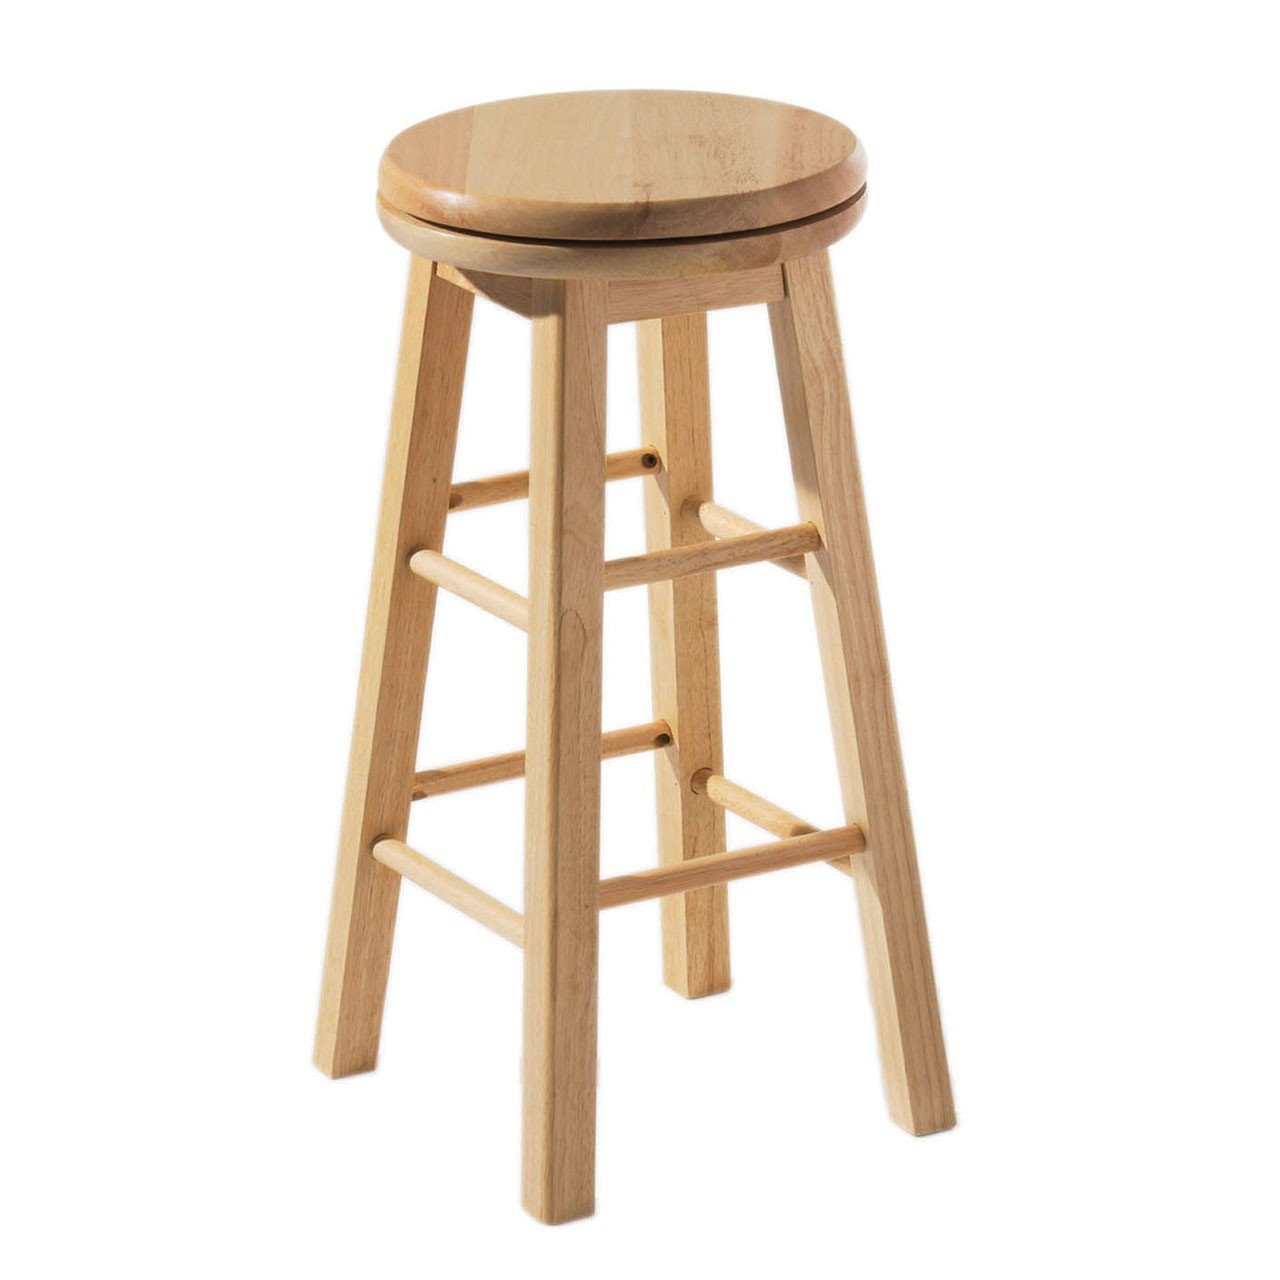 Prime Furnishing Natural Rubberwood Revolving Stool - Set Of 2